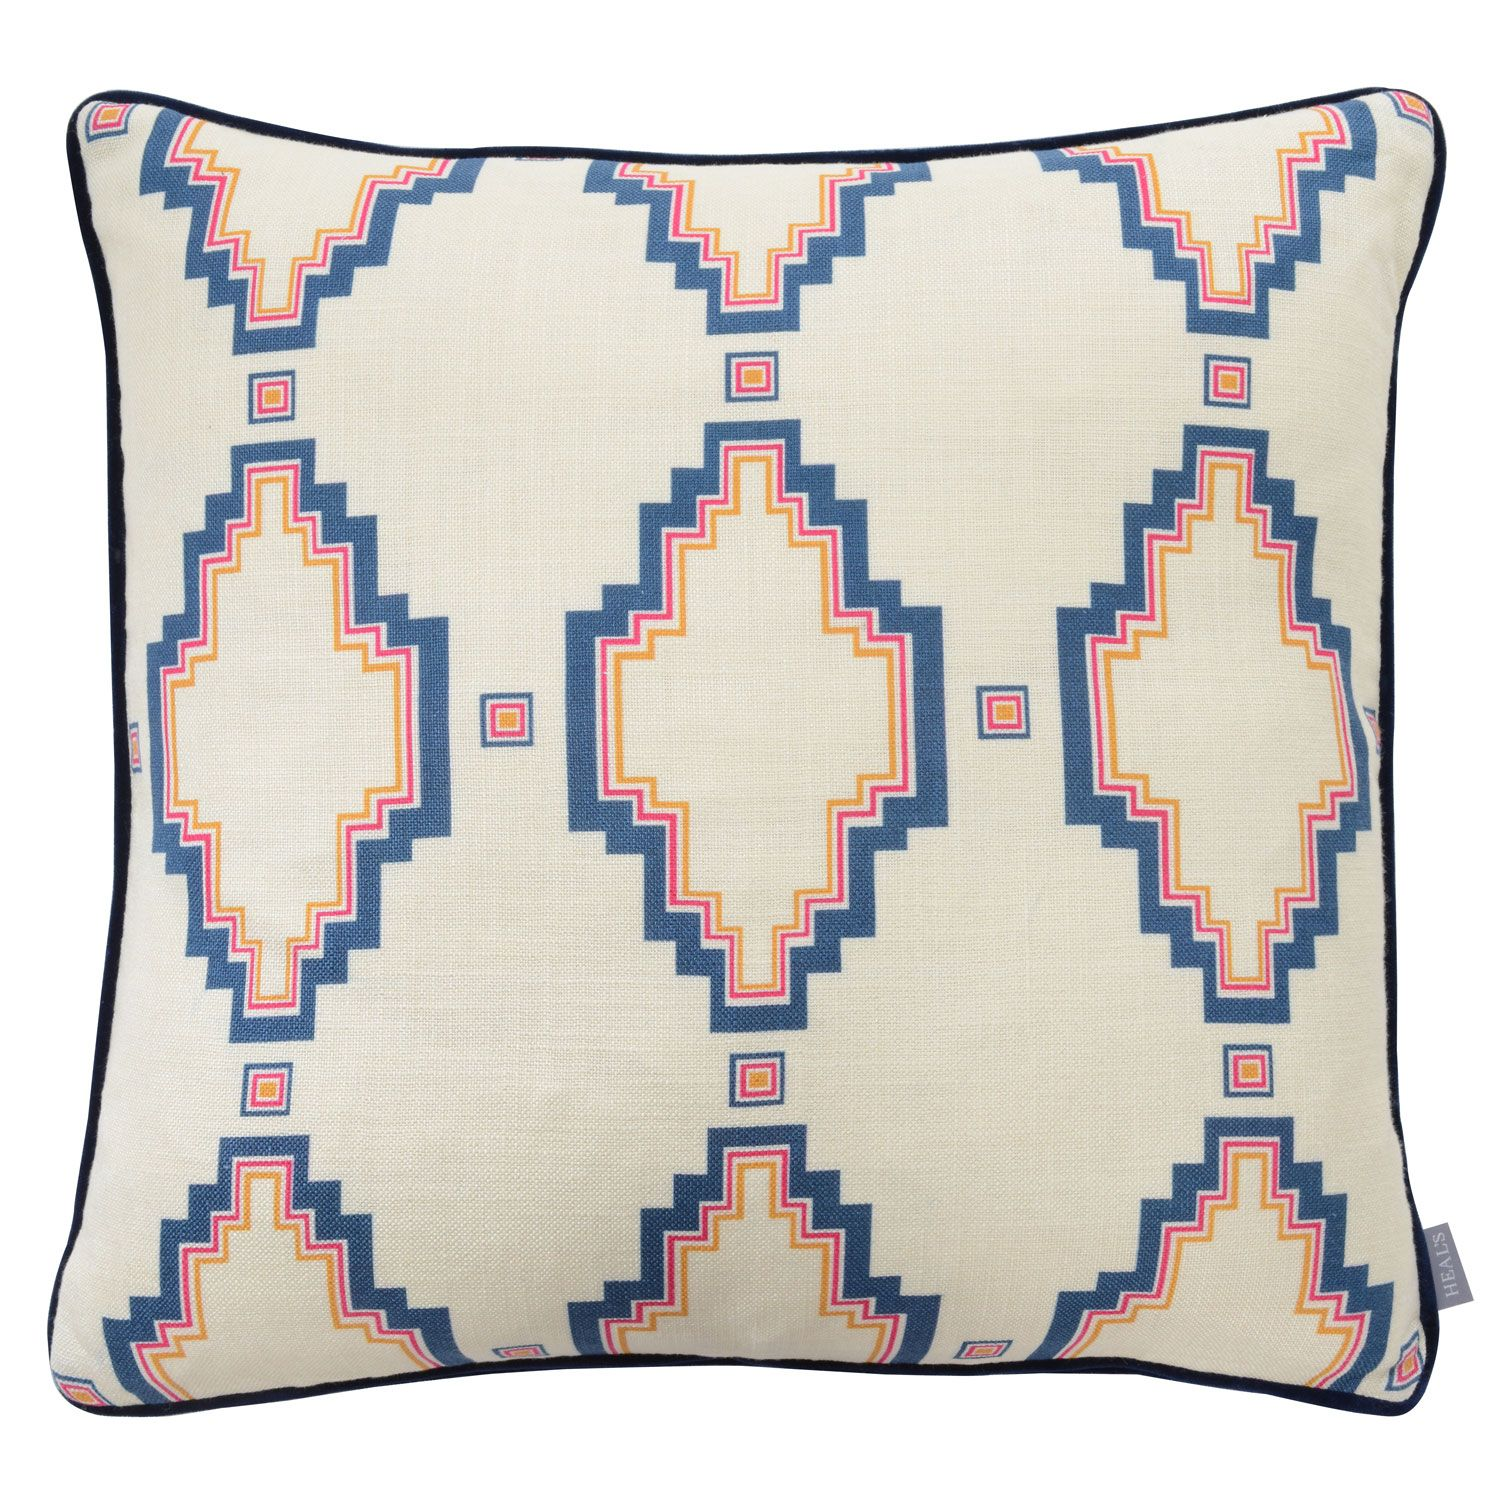 Heal\'s 1810 Deco Trellis Cushion By Ottilie Stevenson | Cushions ...